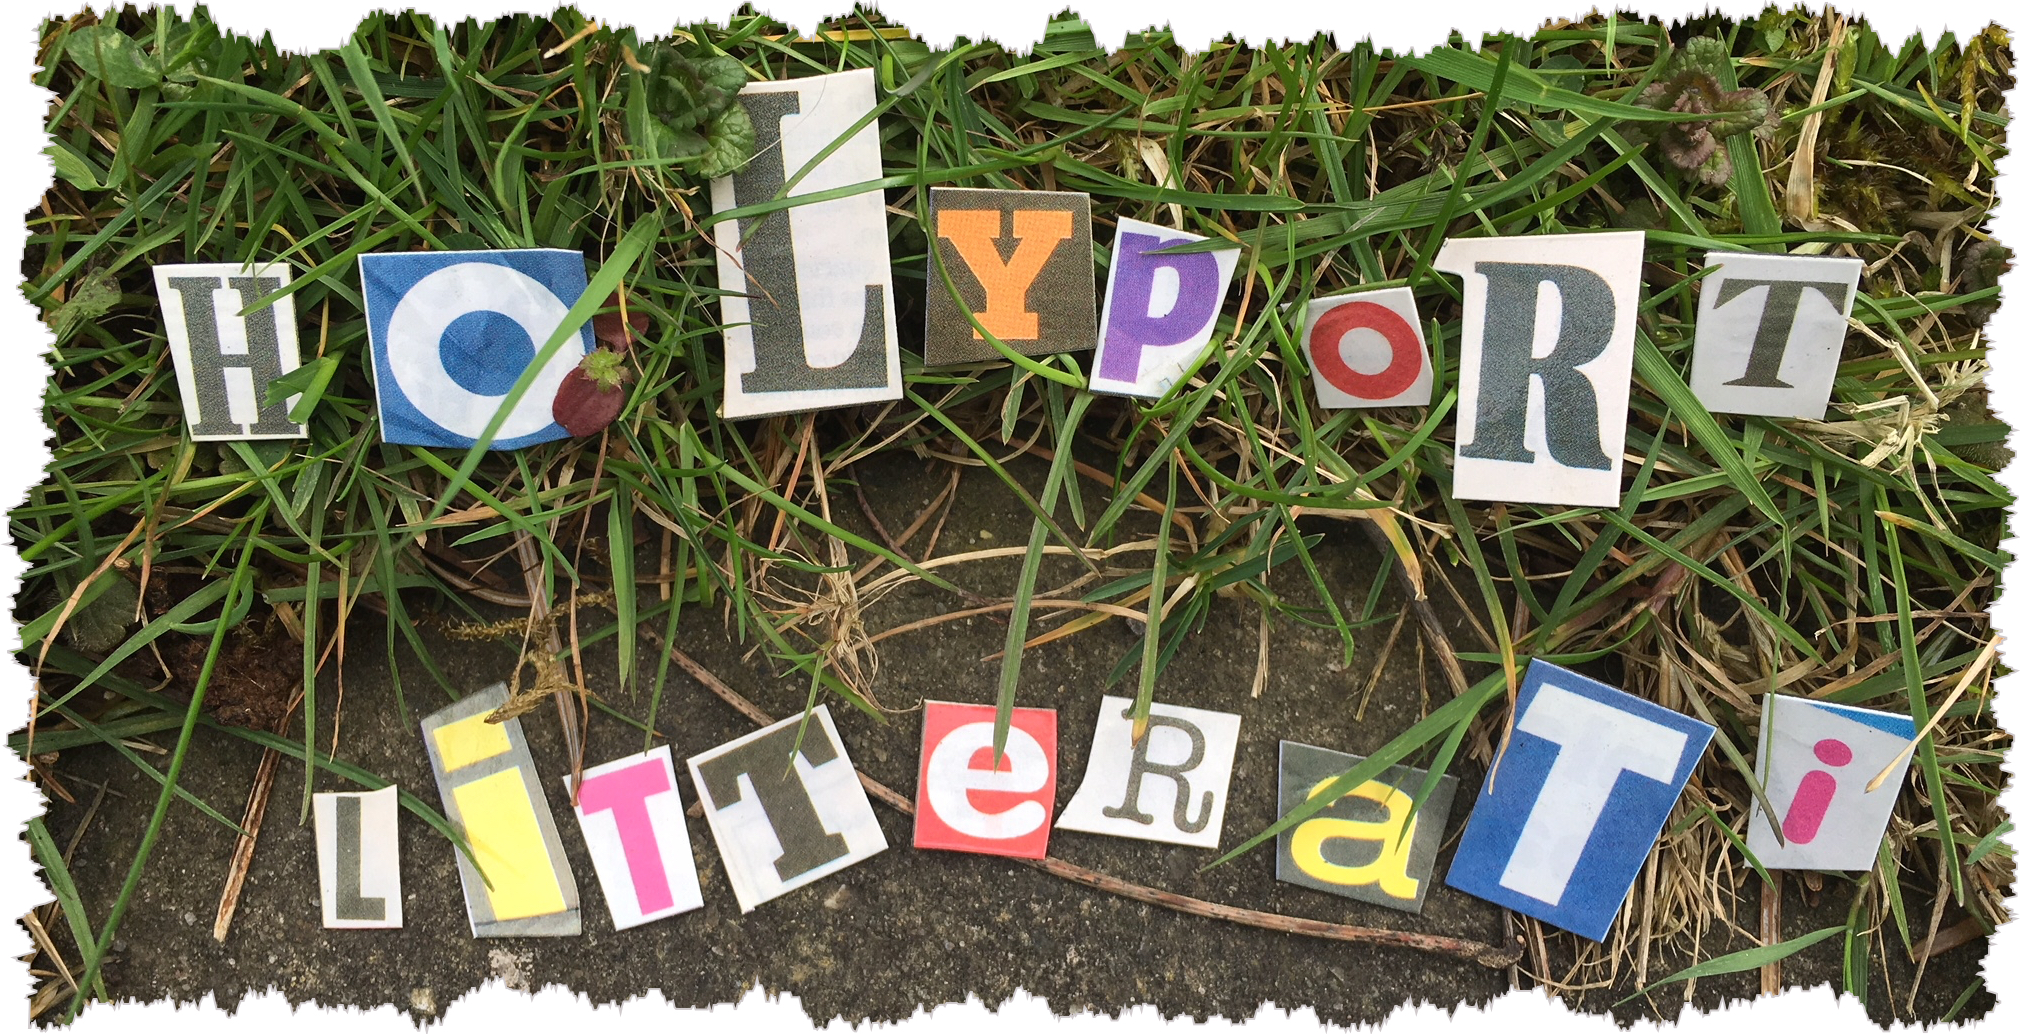 Holyport Litterati – how it started!